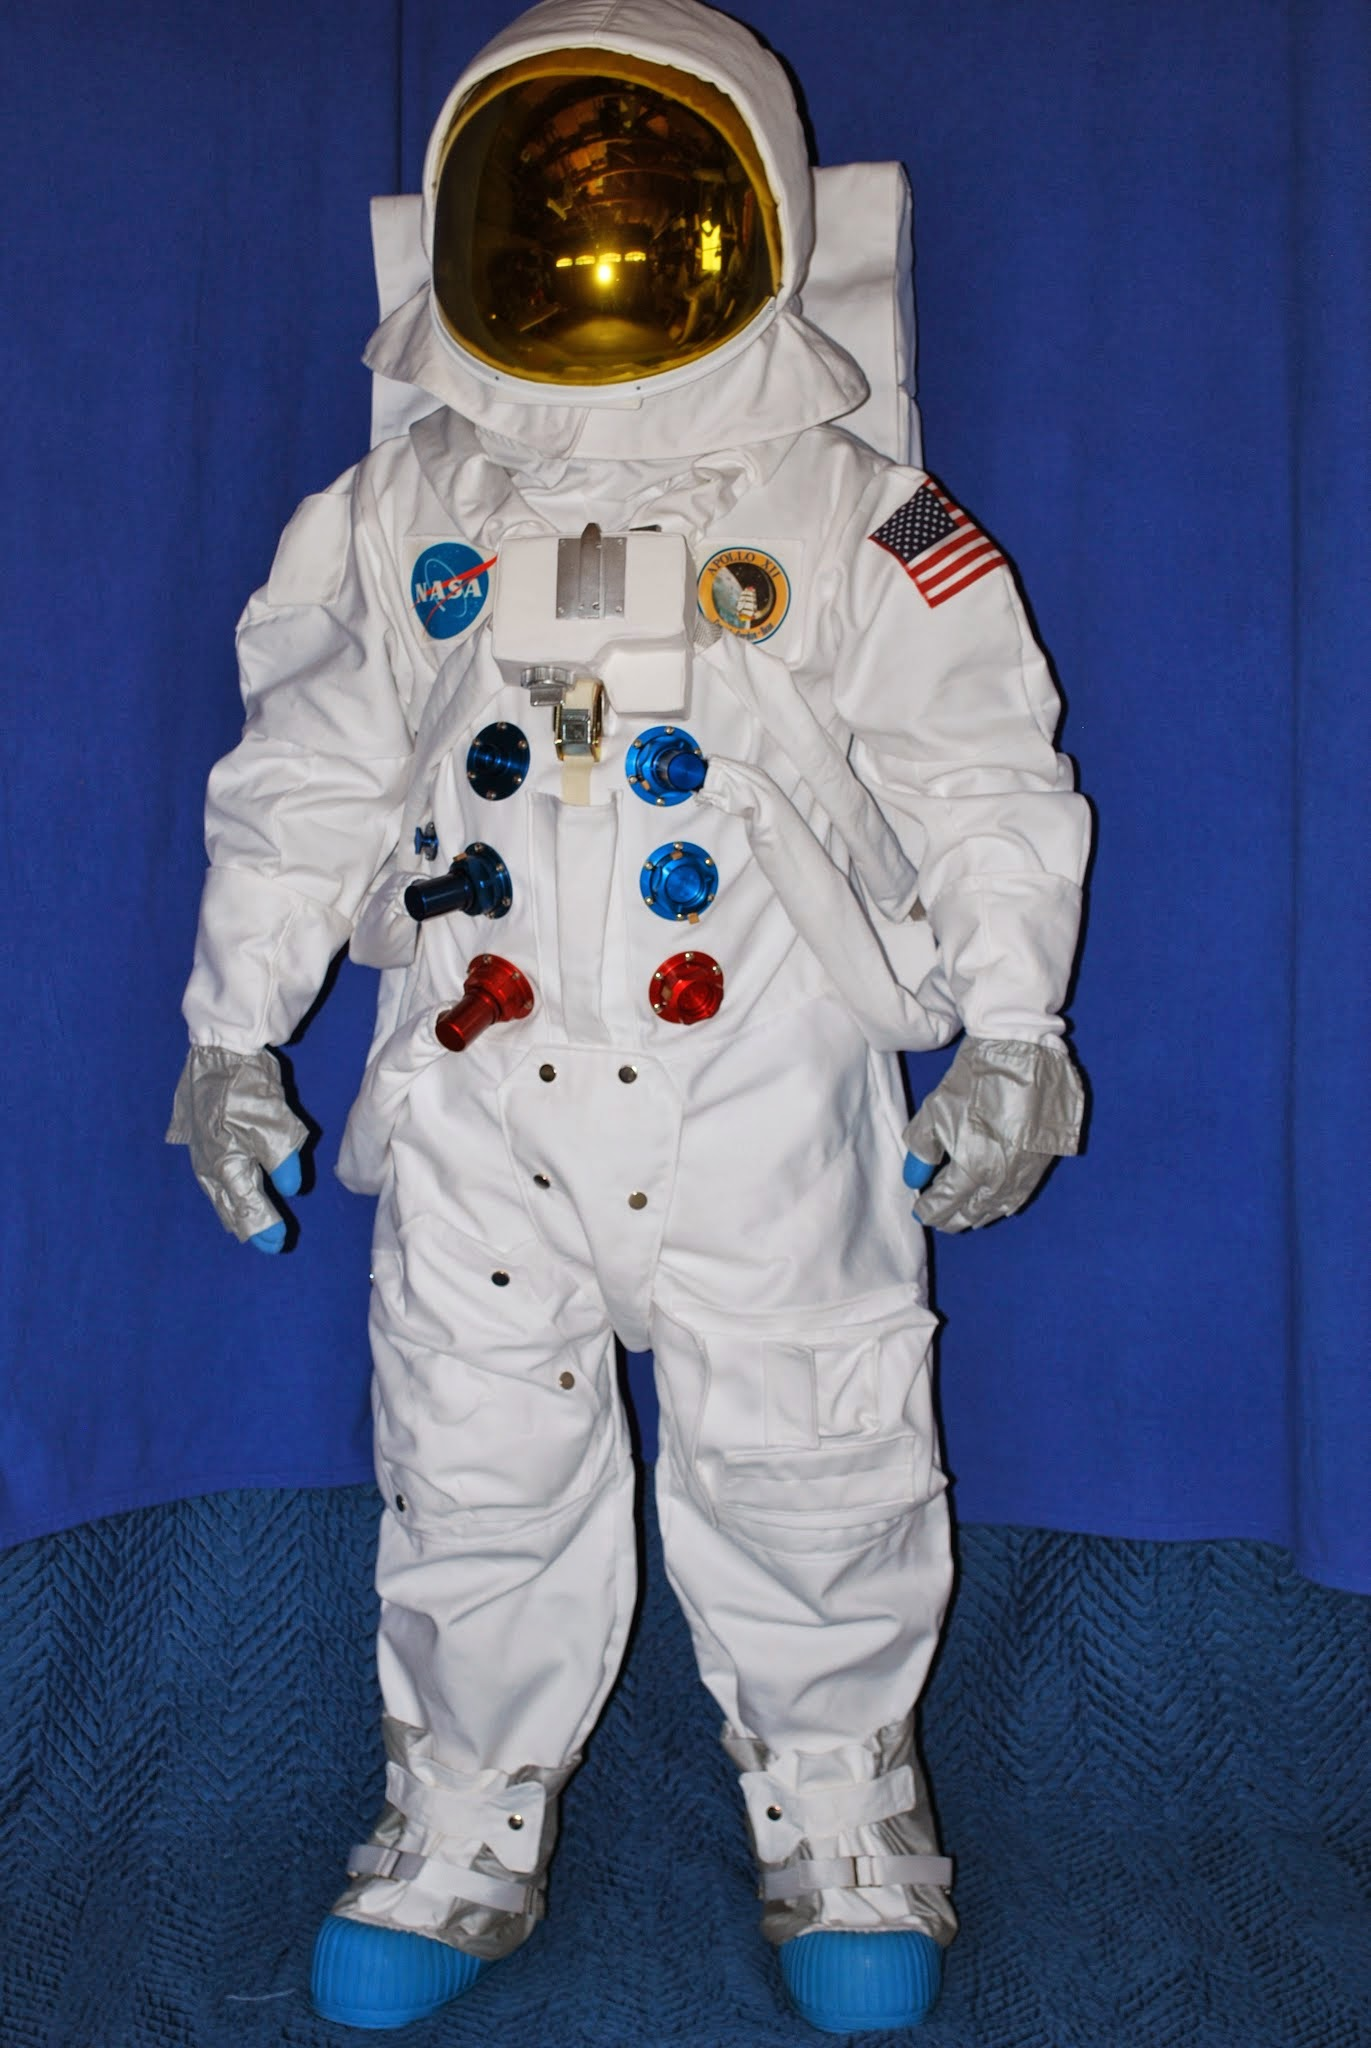 weight nasa astronaut costume - photo #21